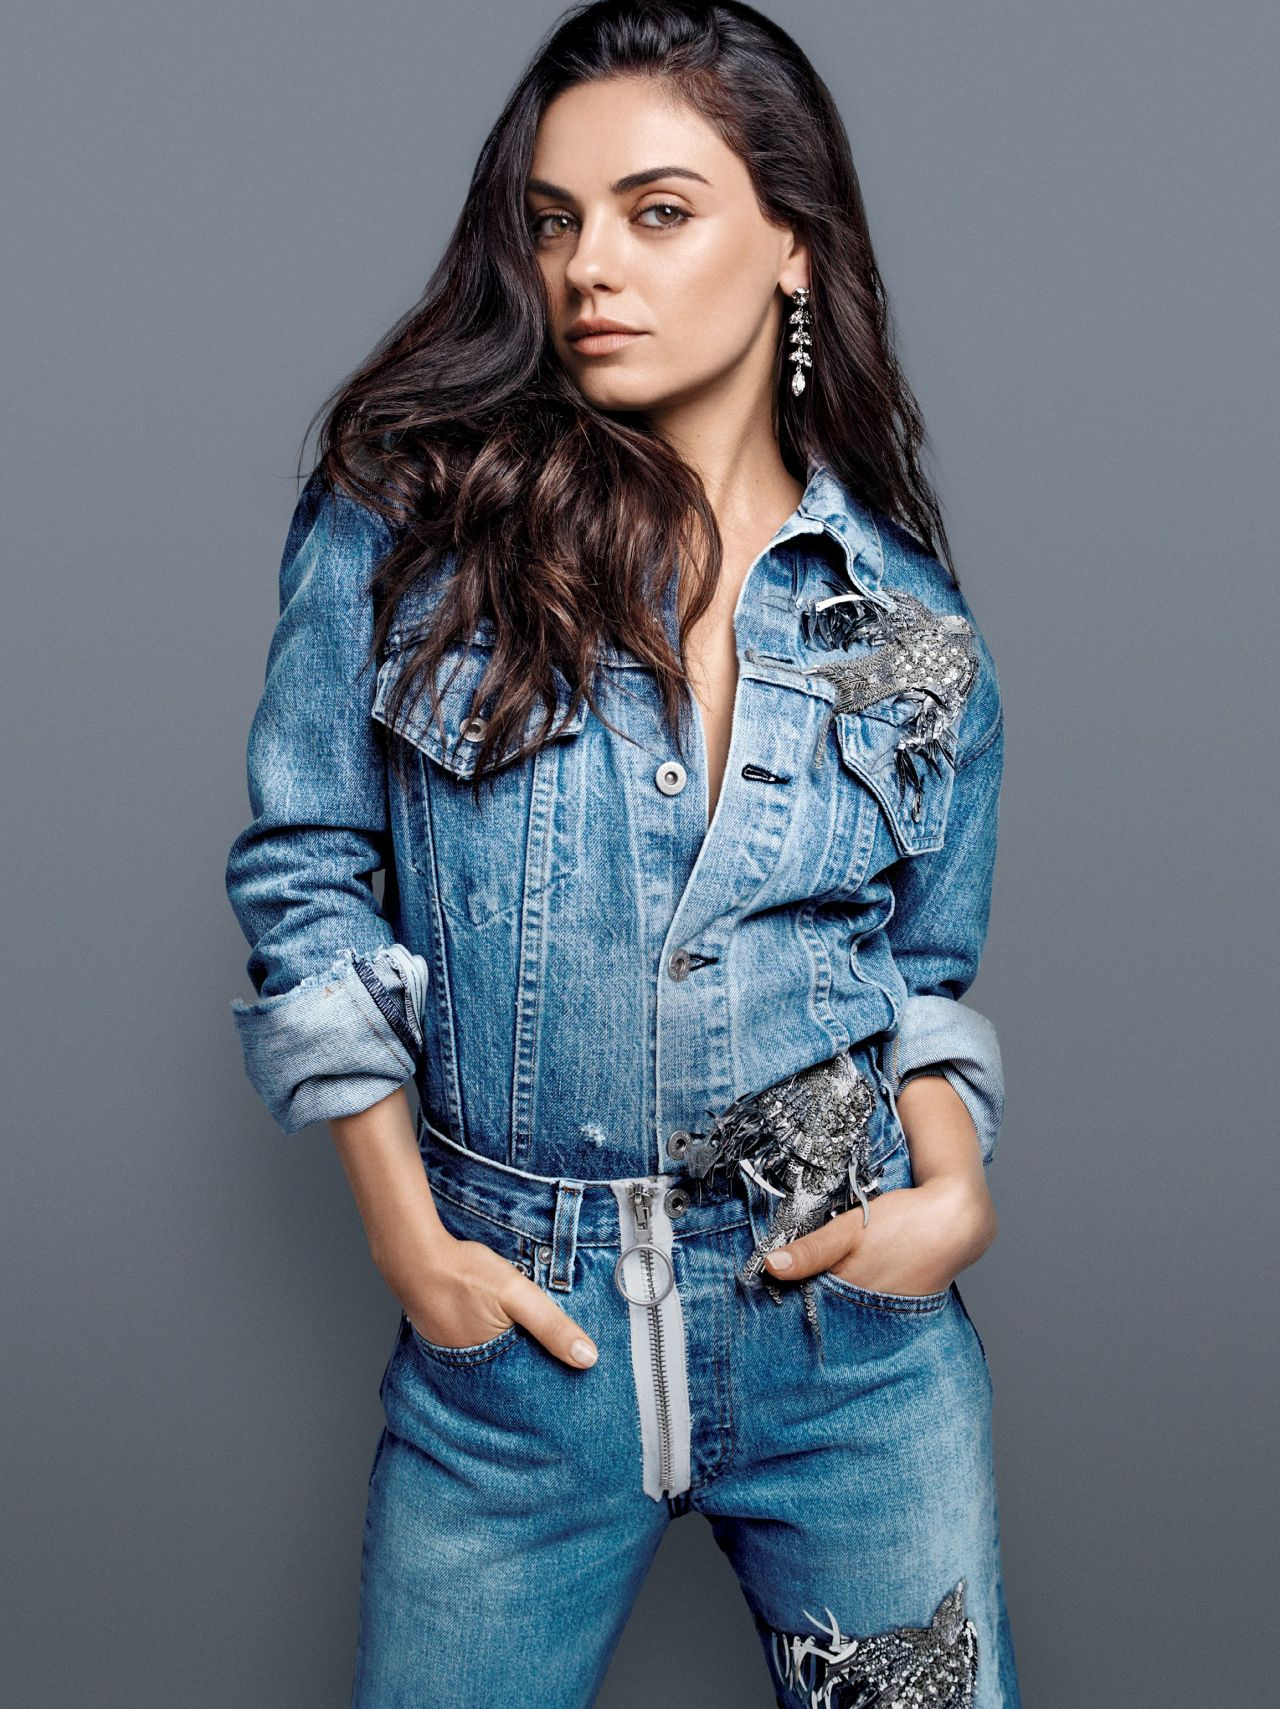 Mila Kunis - Photoshoot for US Glamour August 2016 Mila Kunis